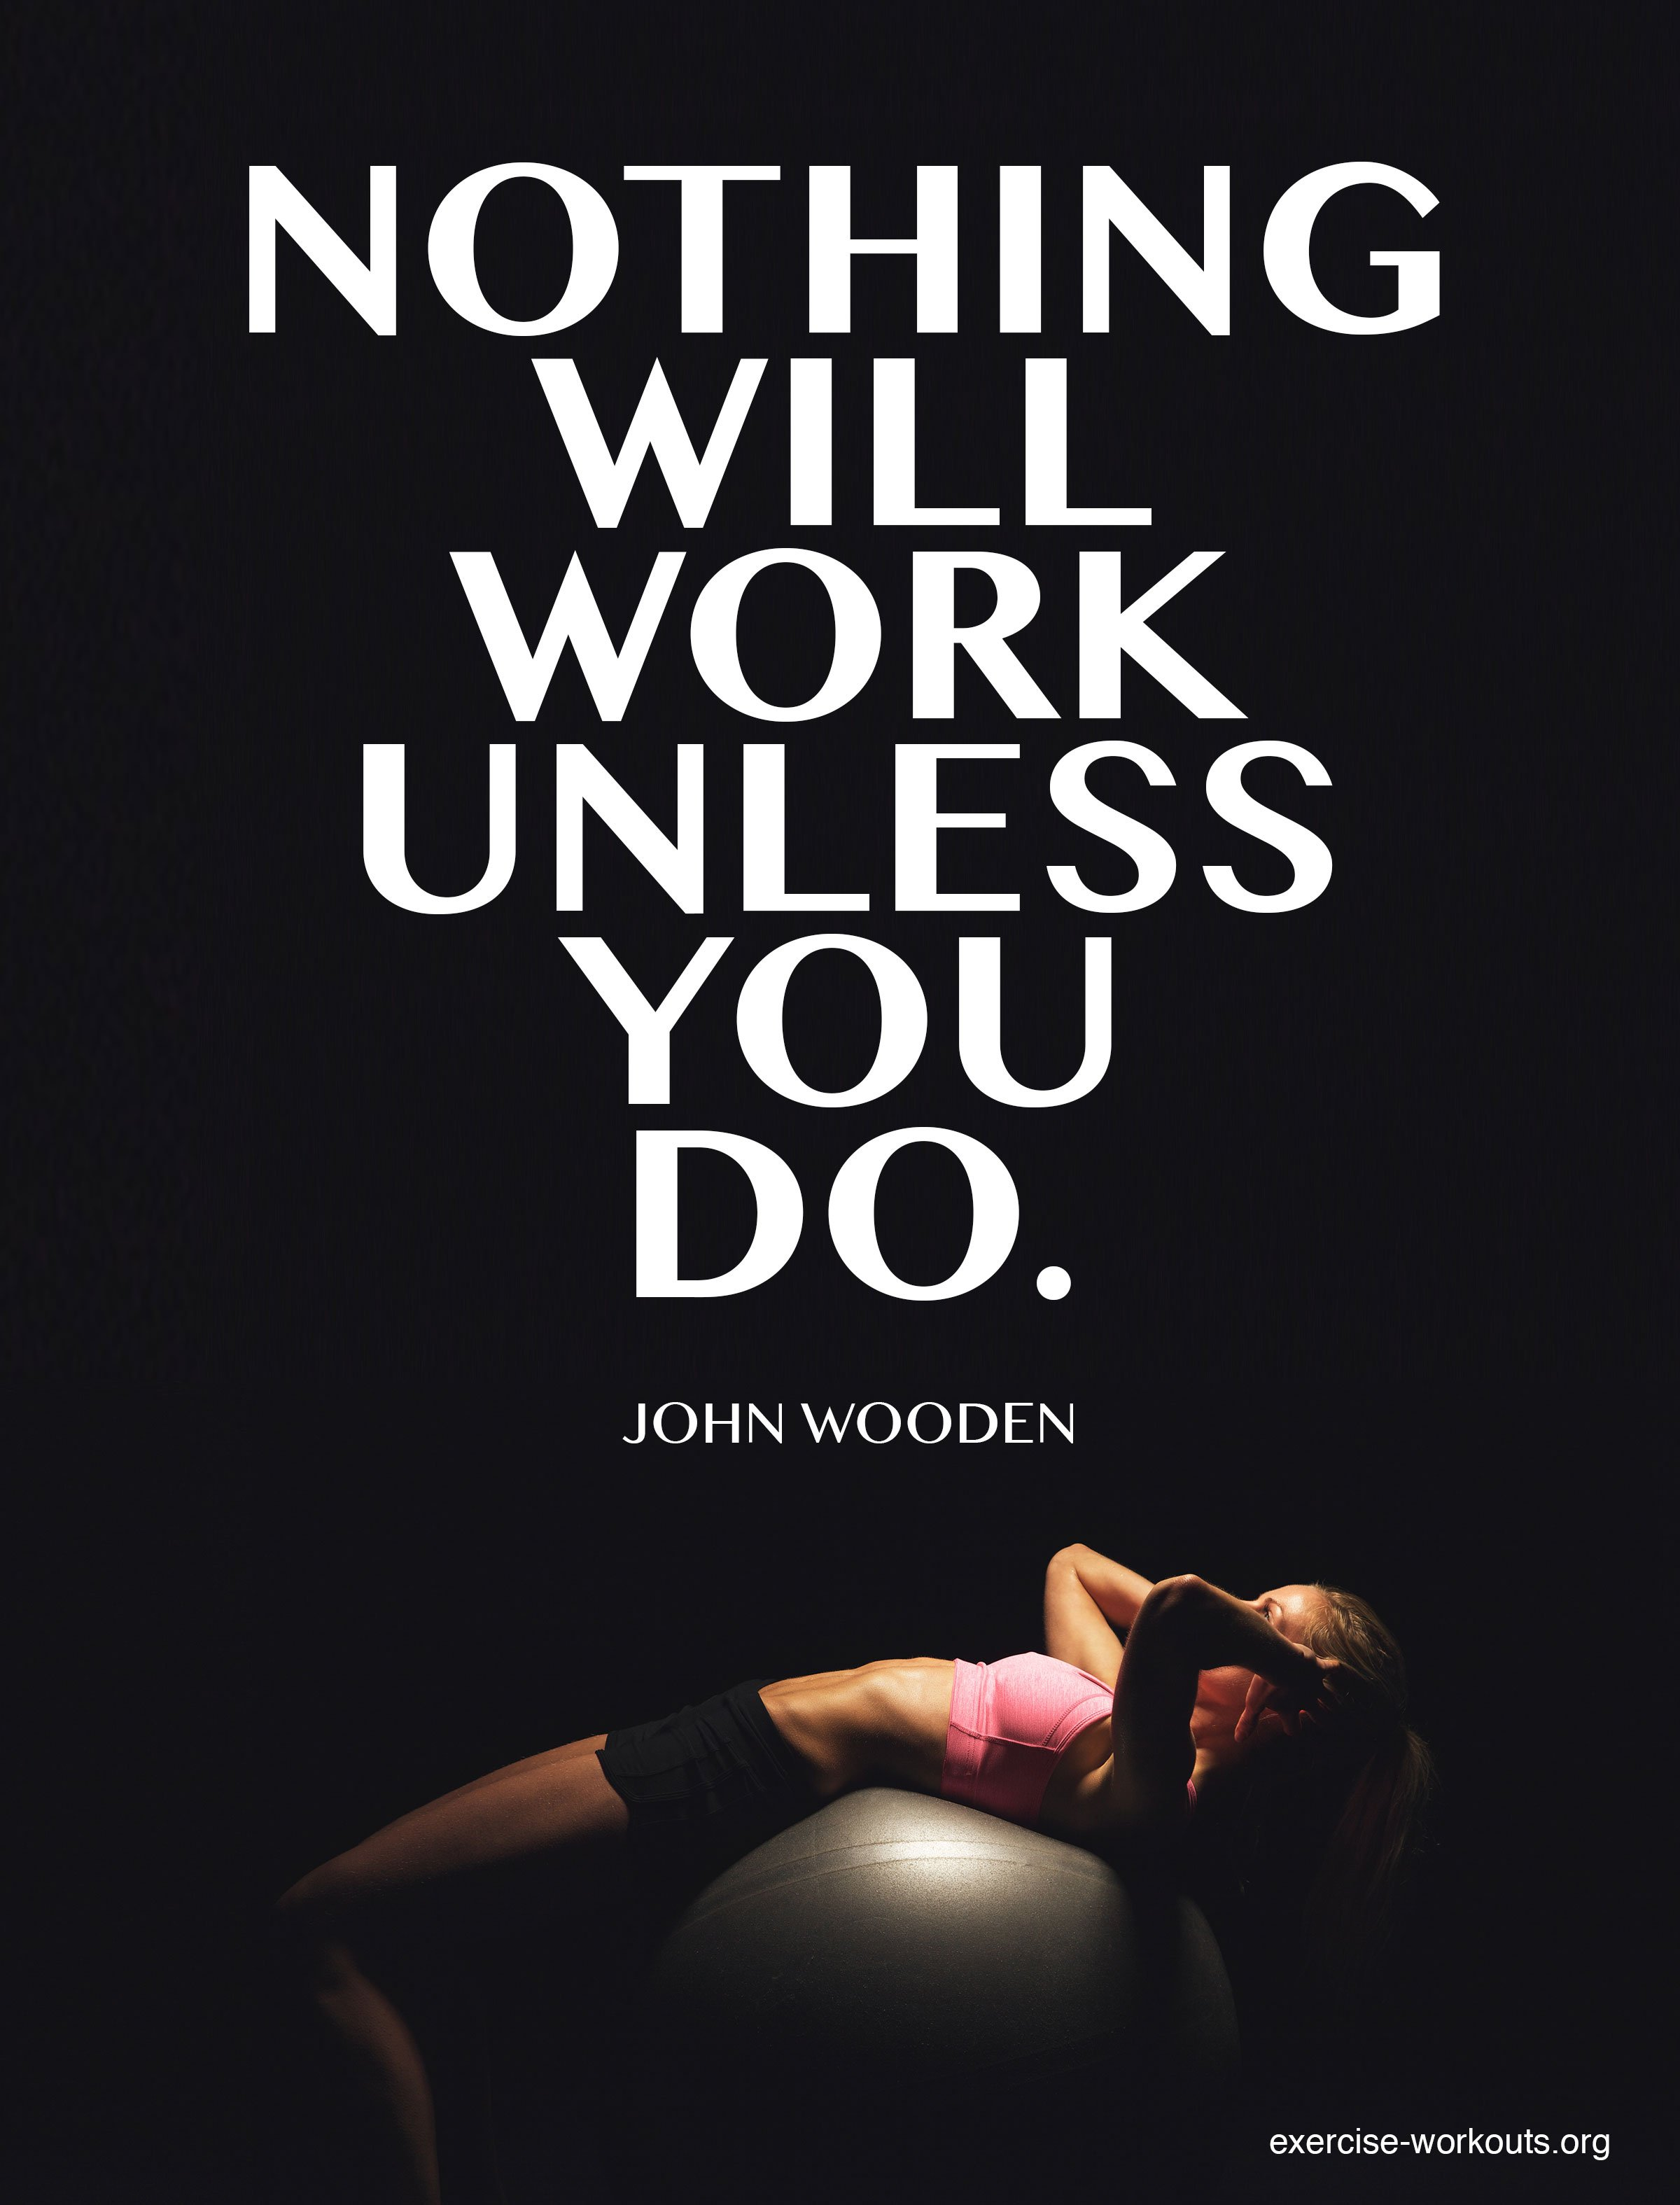 Inspirational Workout Quotes Quotesgram These 25 quotes celebrate the women who inspired revolutions in both their industries with groundbreaking discoveries and in society with unshakeable pride in being women who love stem. inspirational workout quotes quotesgram